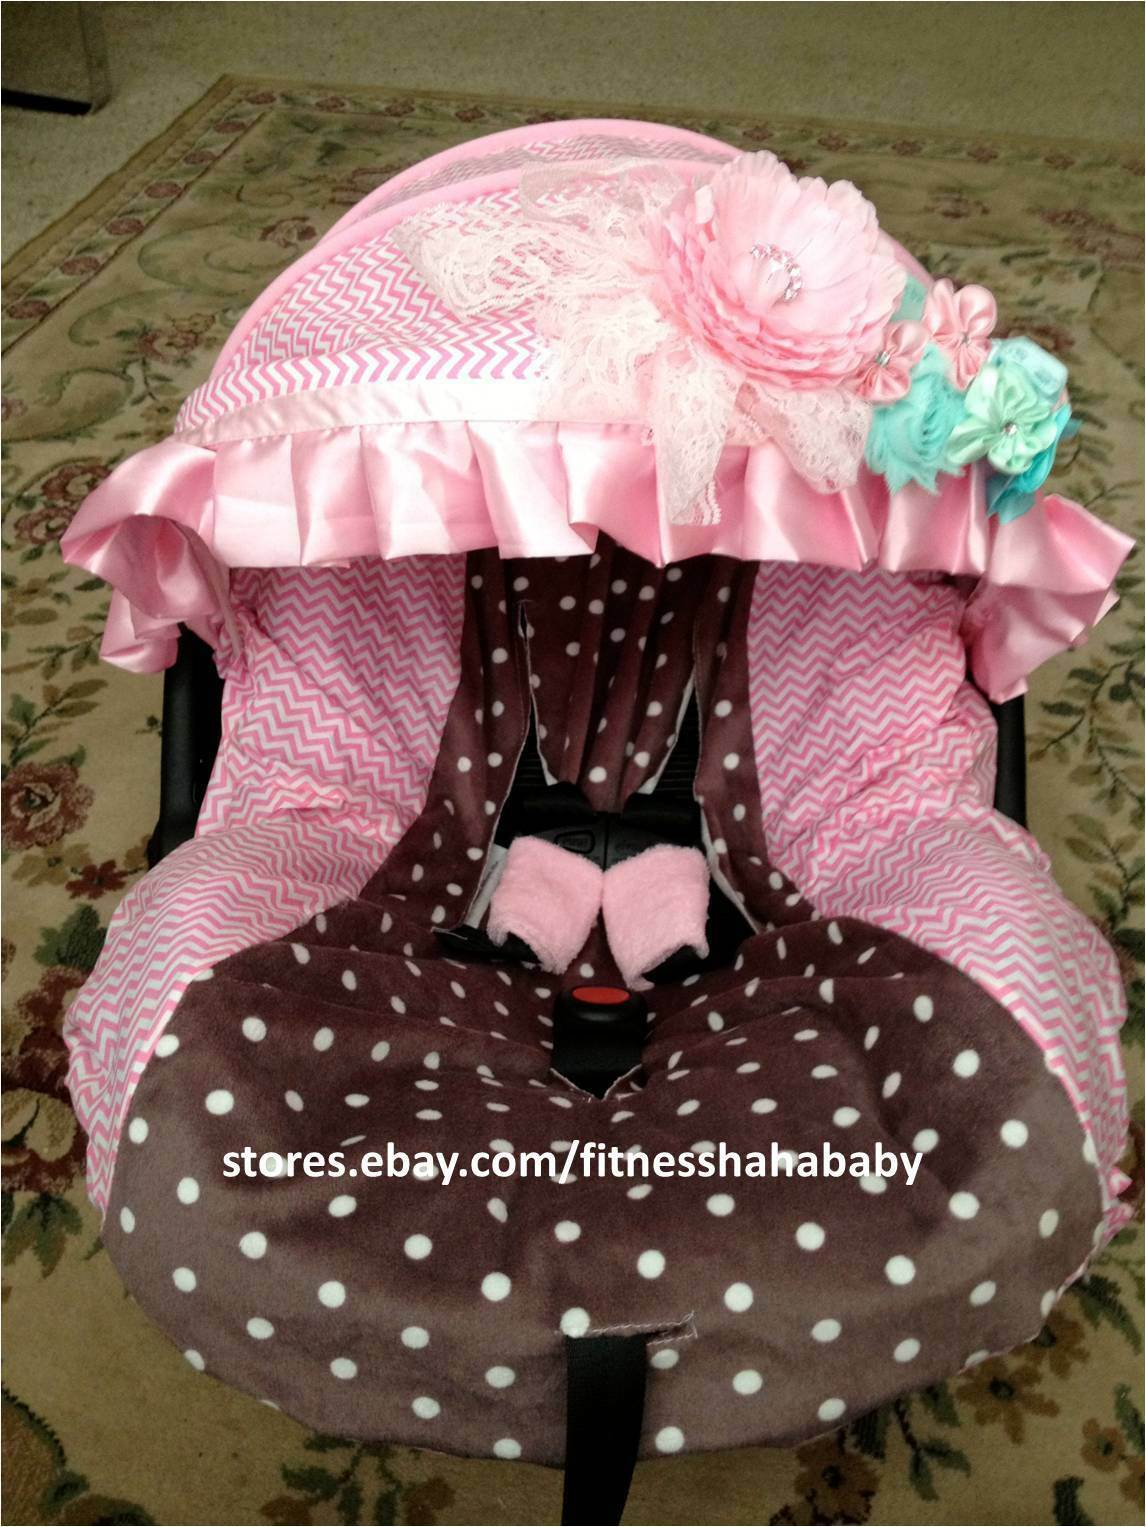 New Adorable Infant Car Seat Cover Canopy Cover Fit Most